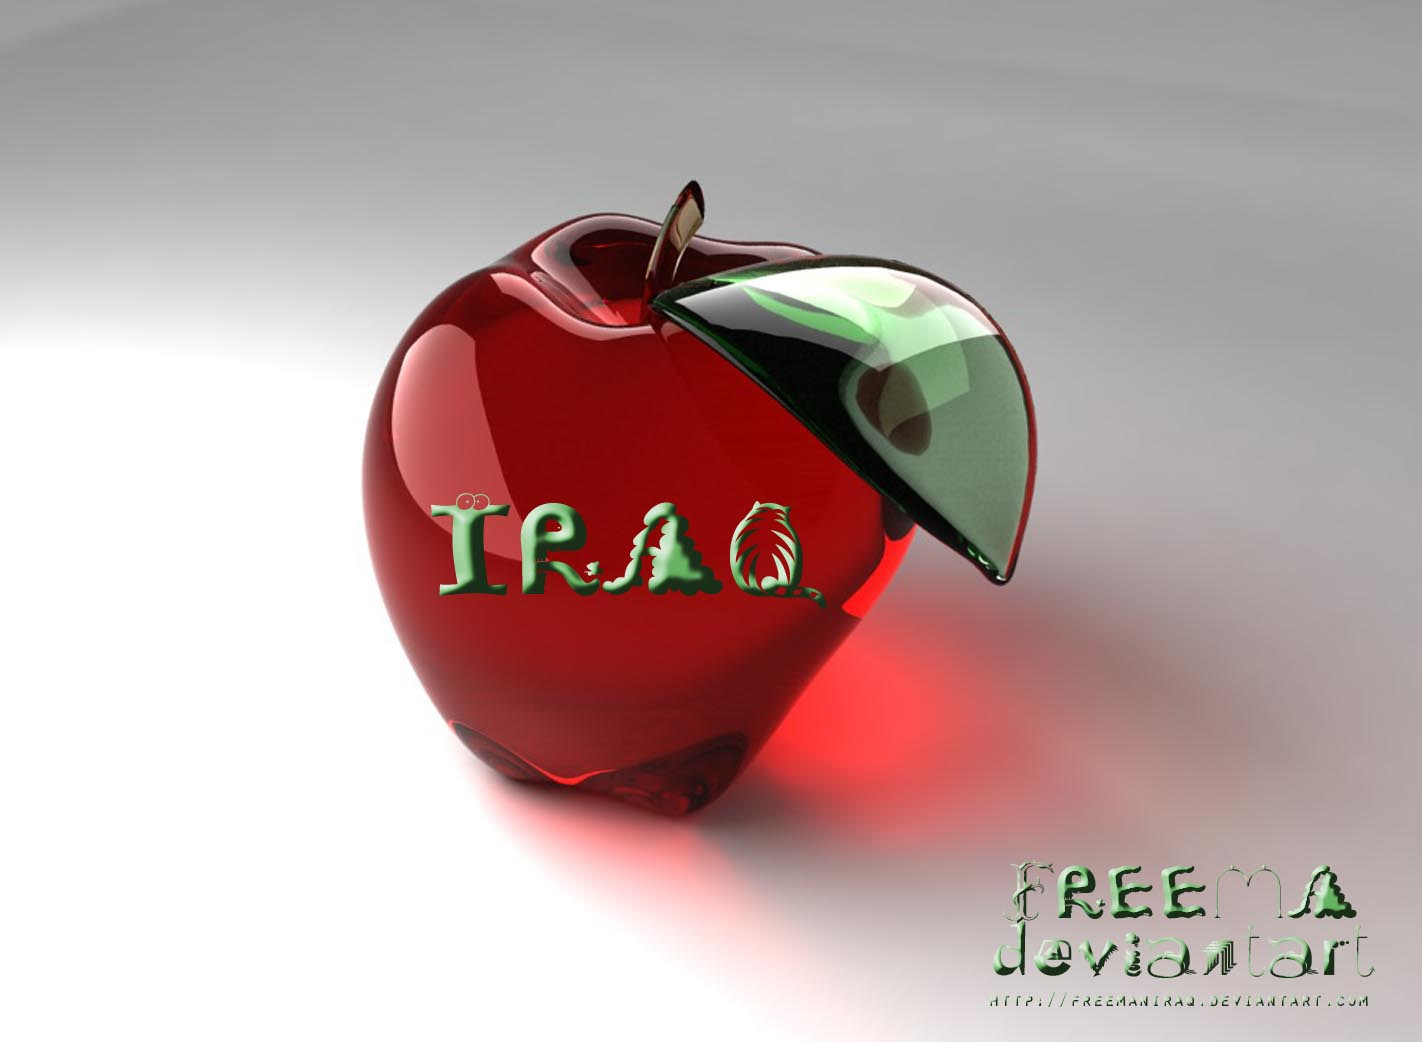 Iraq Apple by freemaniraq